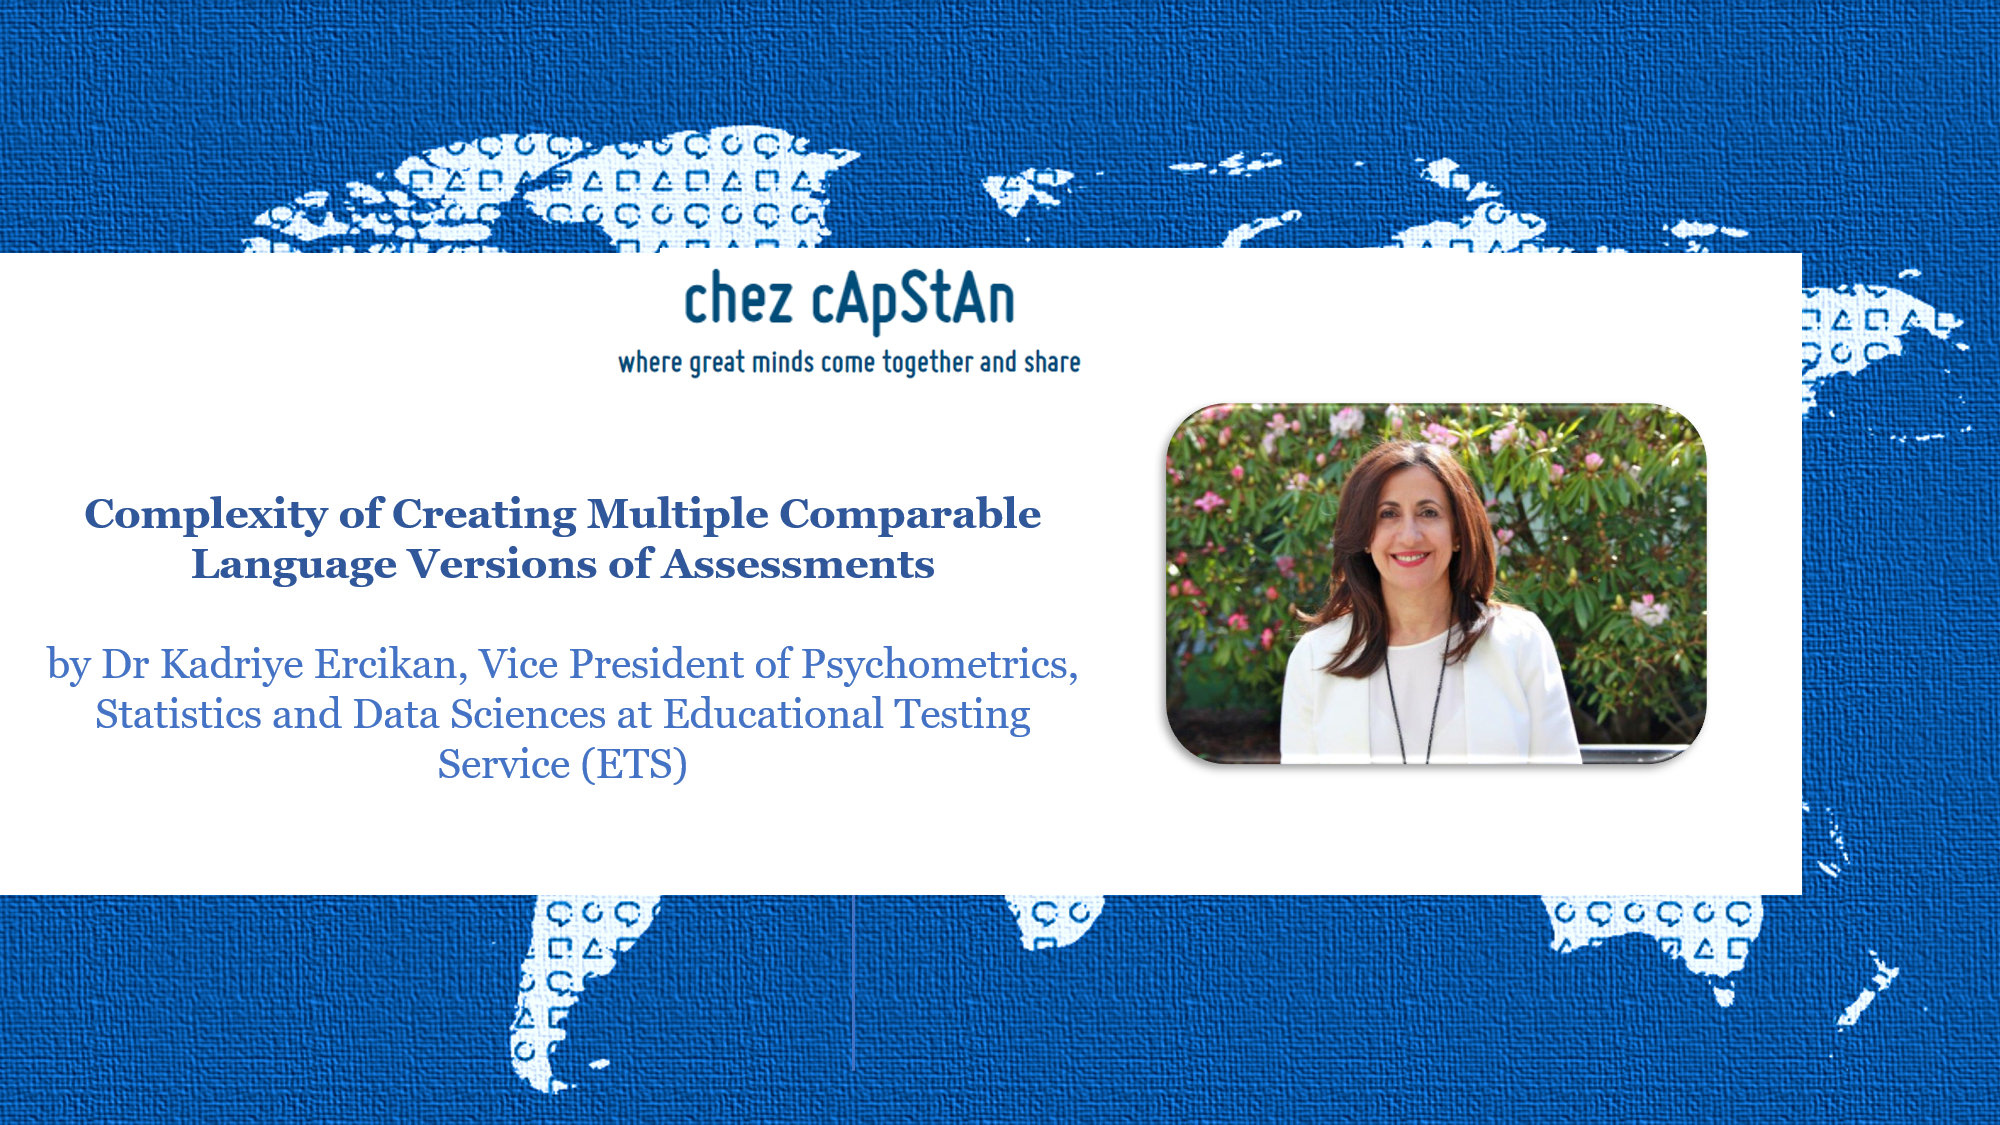 Complexity of Creating Multiple Comparable Language Versions of Assessments